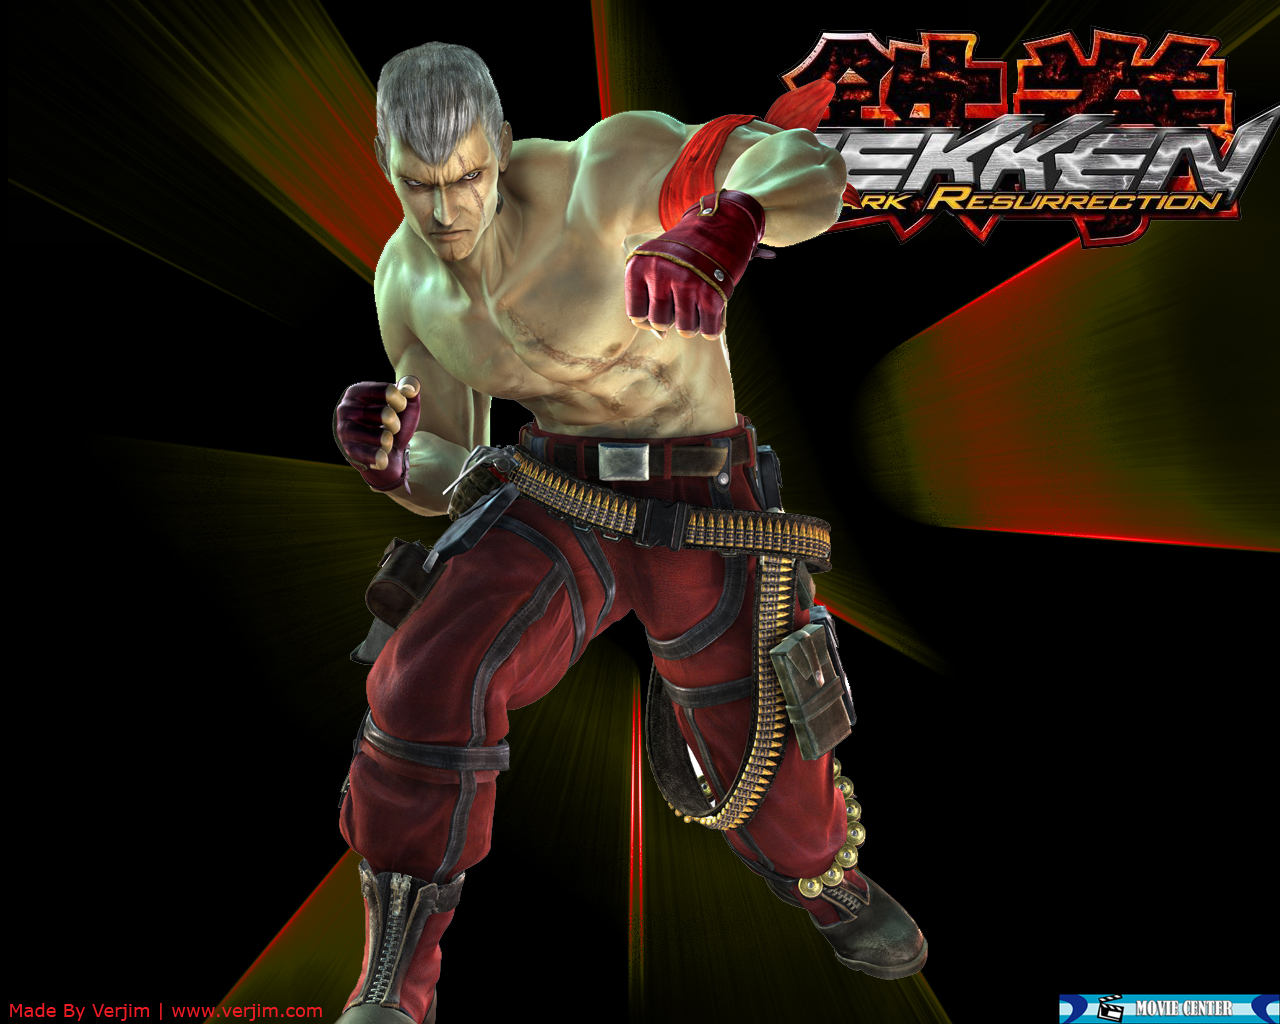 48 Tekken 5 Wallpapers On Wallpapersafari